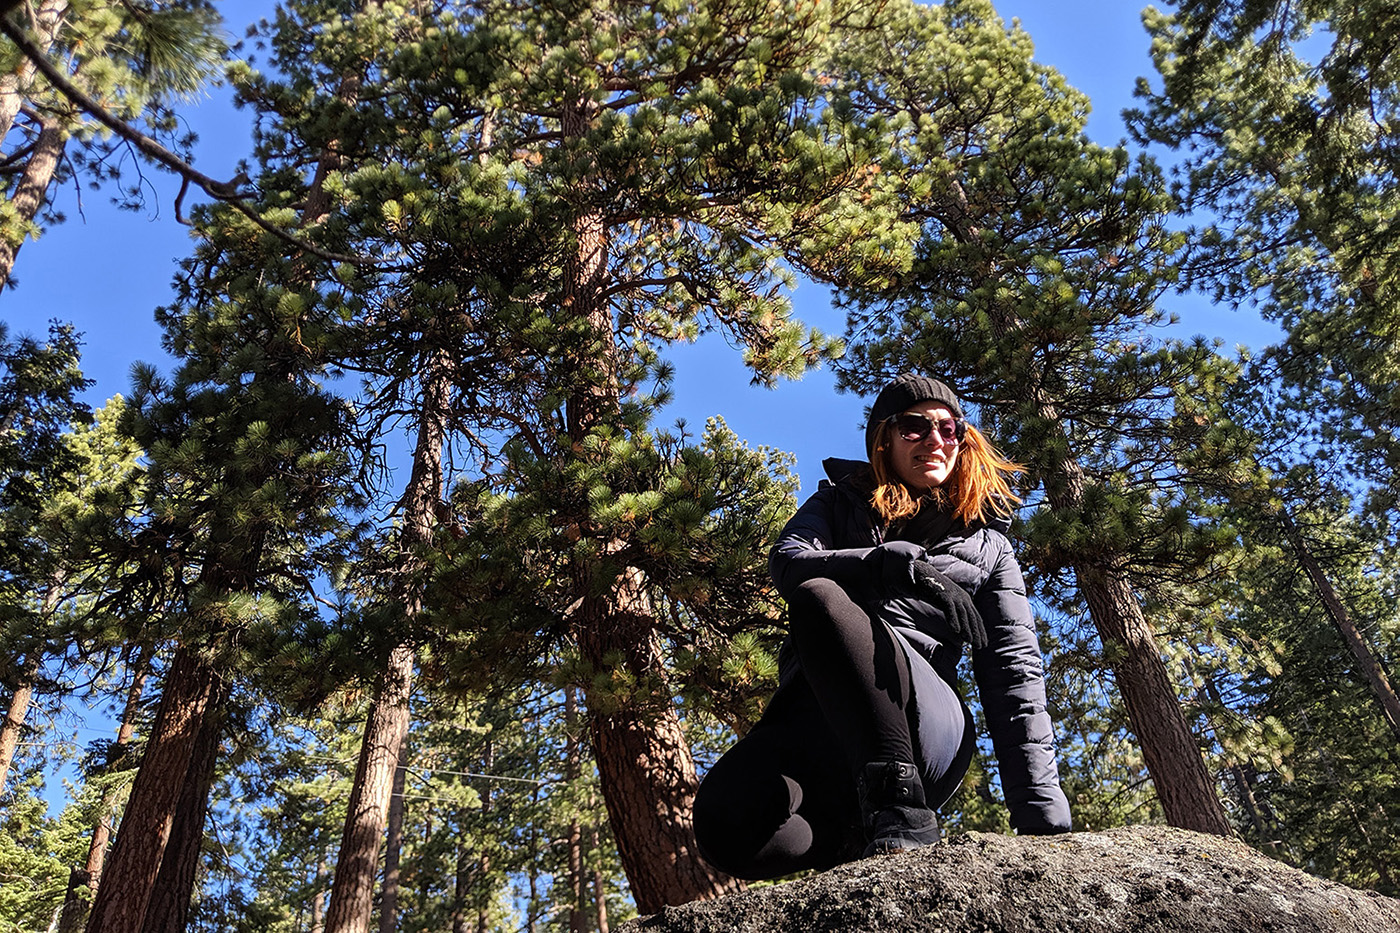 university of iowa alum lauryn ash on a boulder in a forest